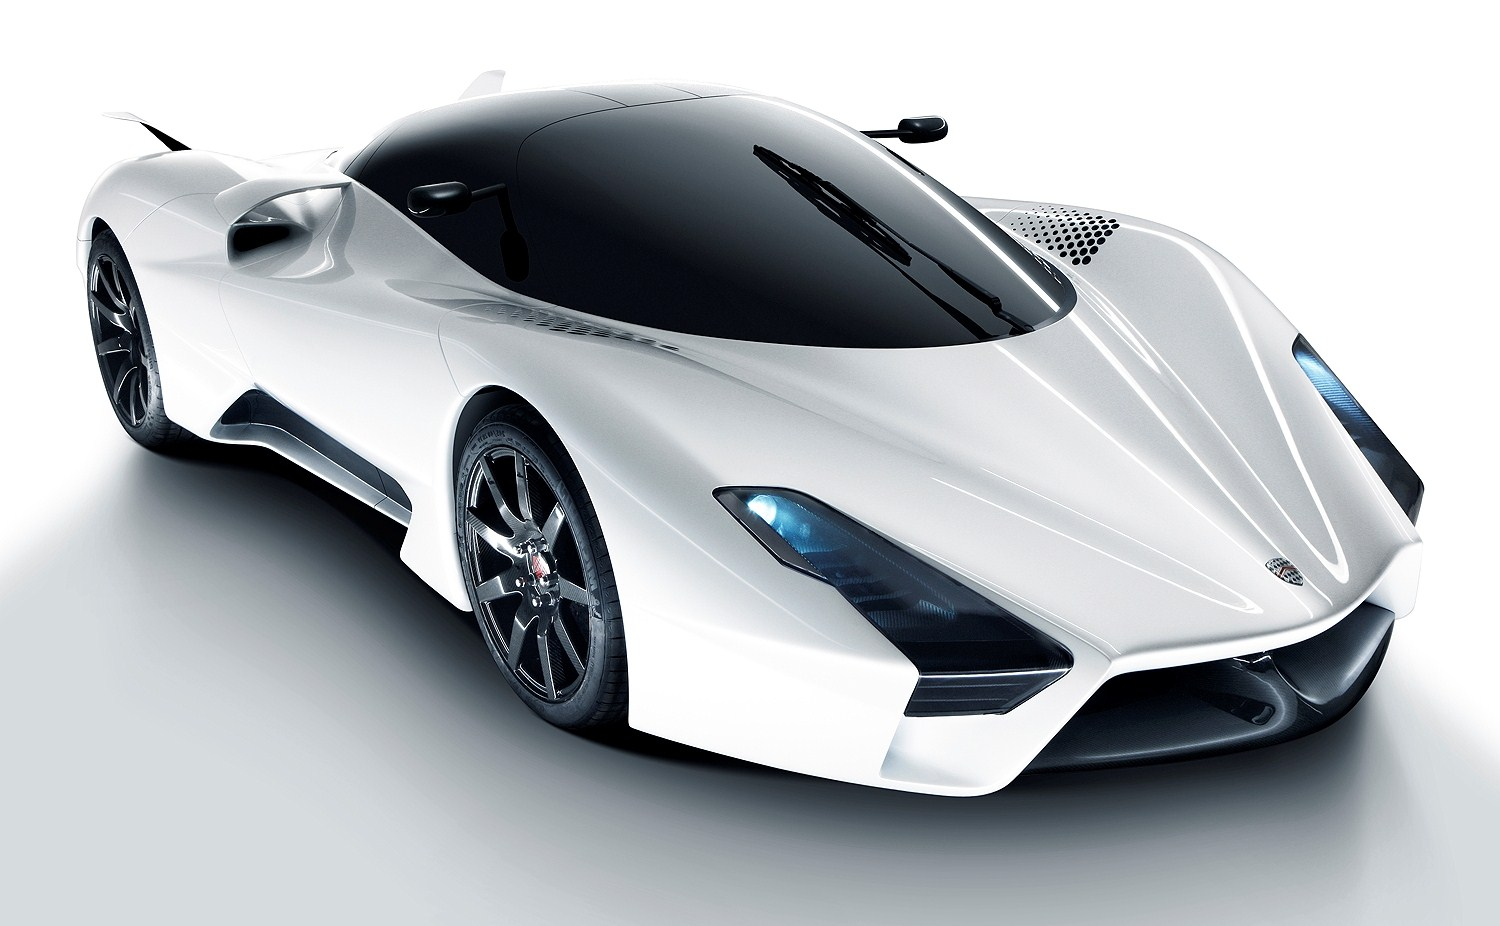 Ssc ultimate aero xt car pricing we are reviews new car blog showing best collection of ssc ultimate aero xt car pricing car wallpaper download free for you device sciox Image collections